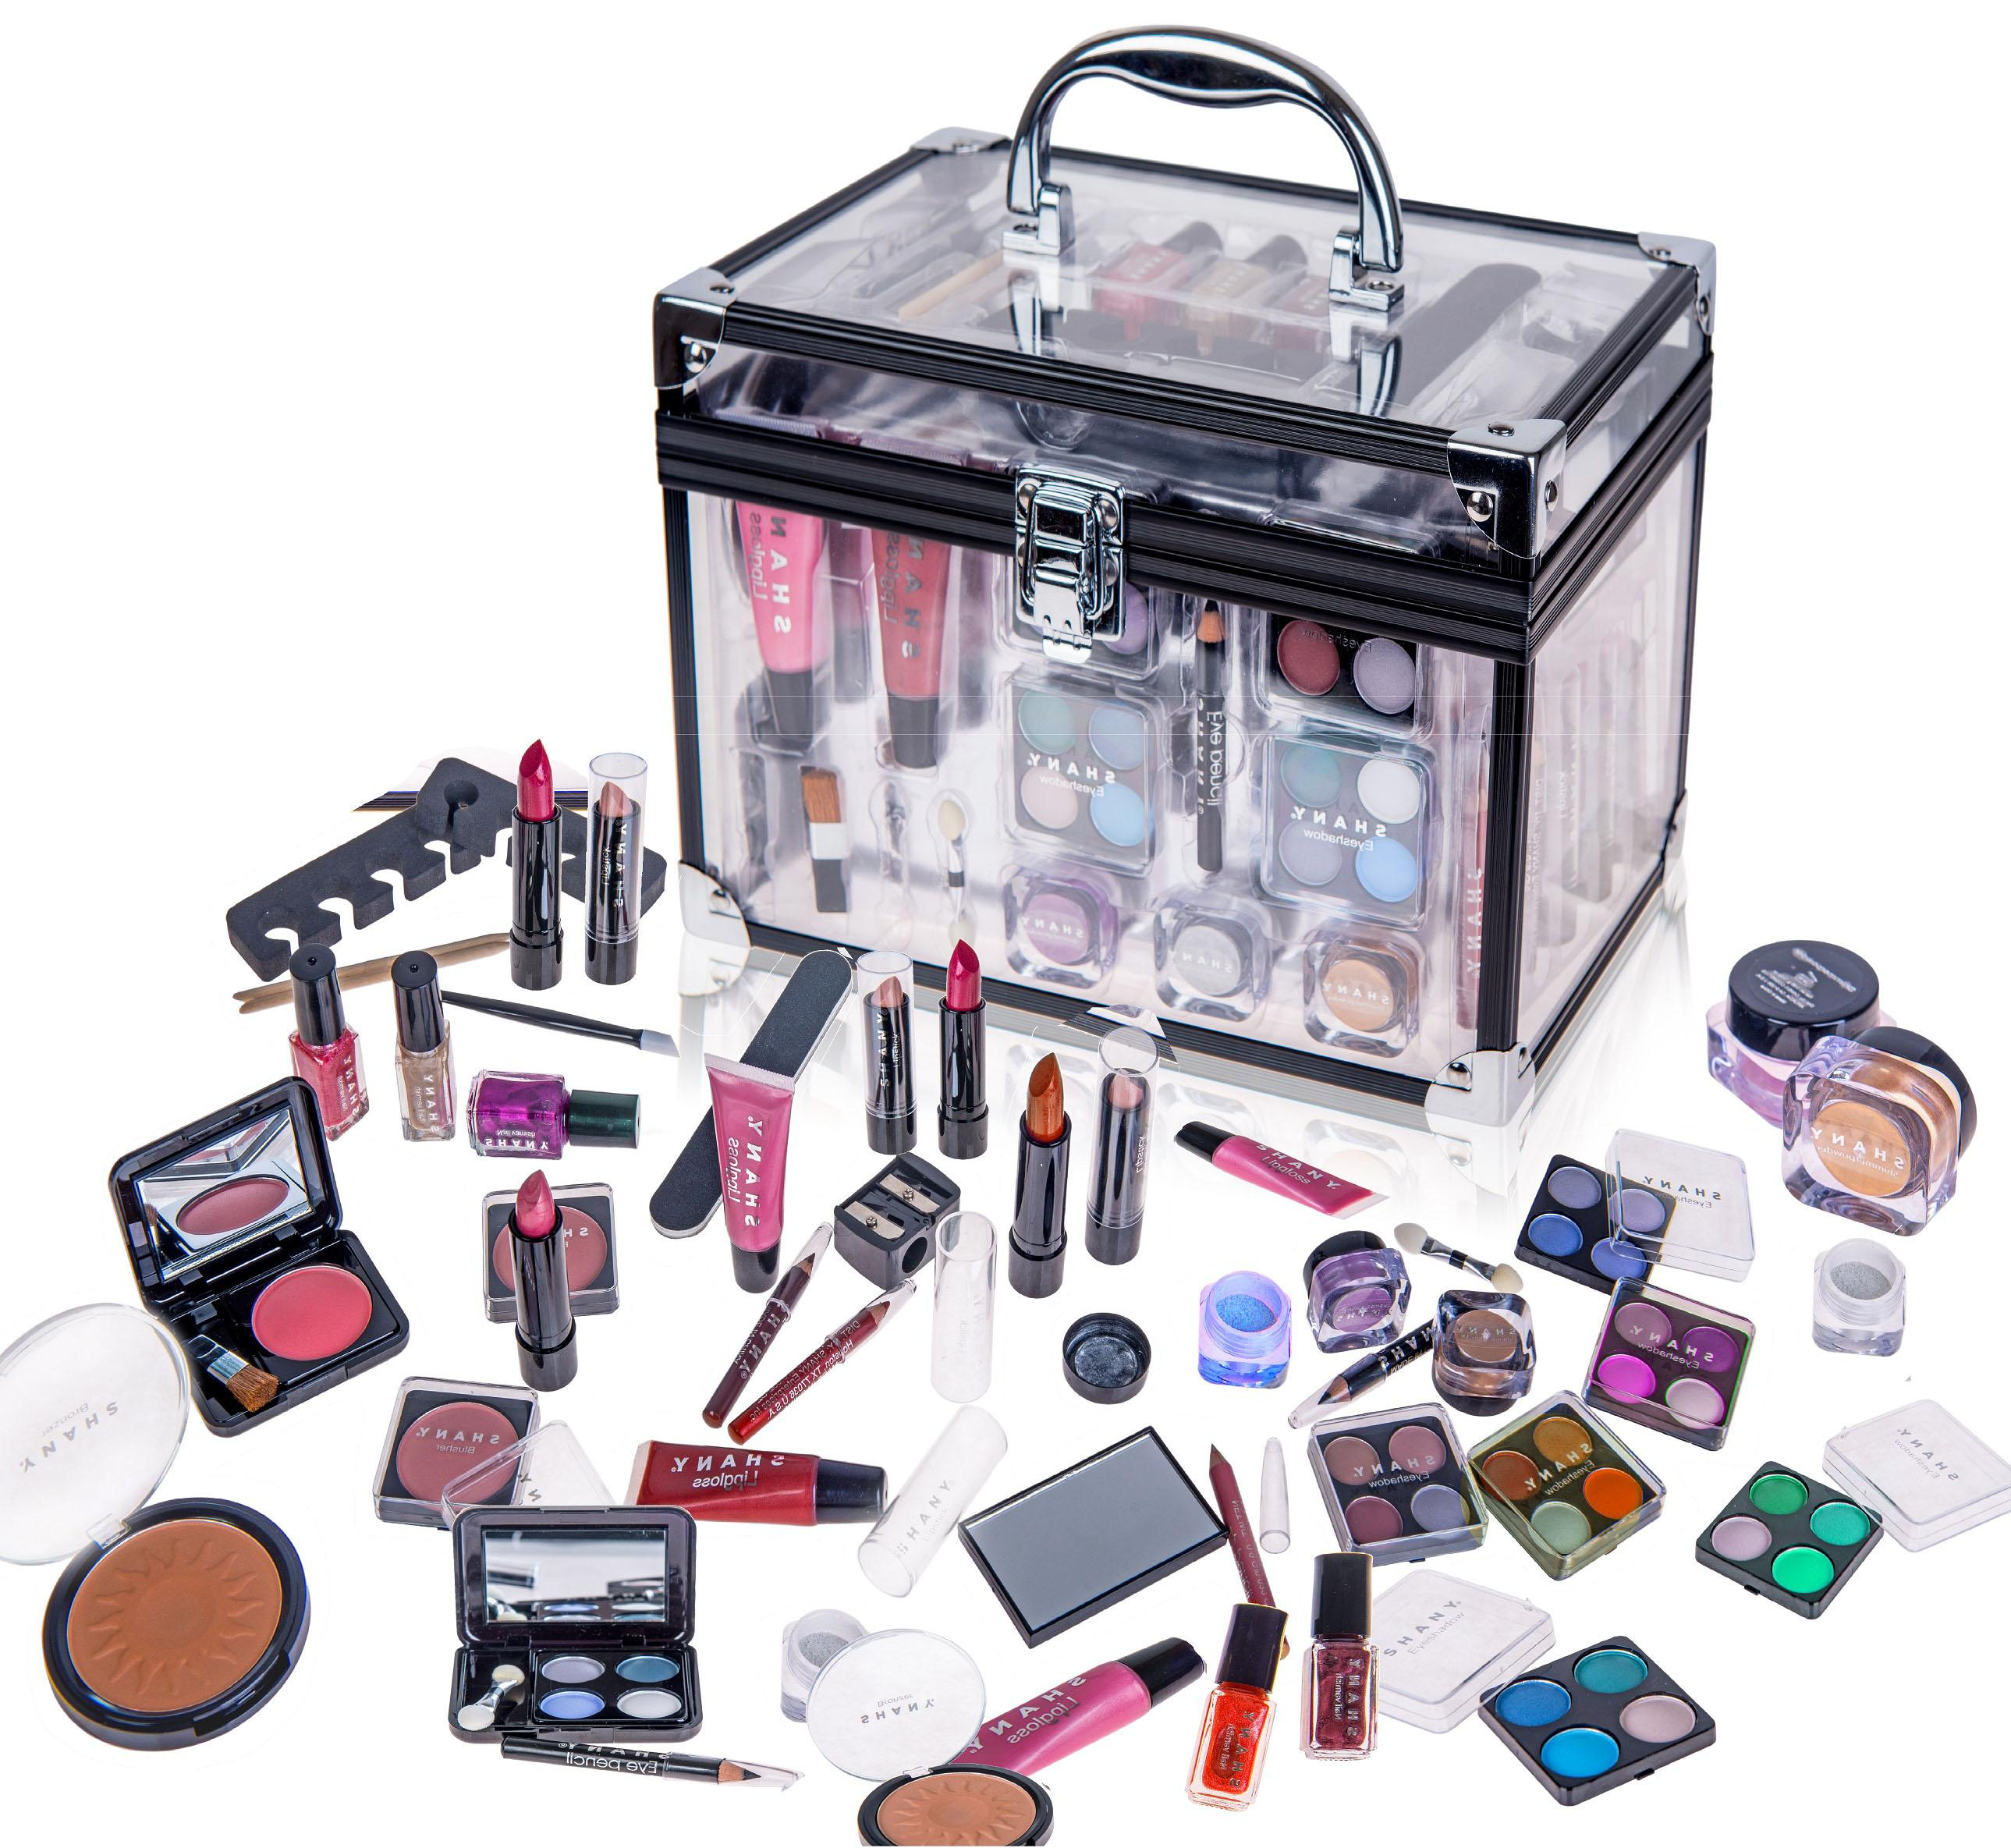 Shany cameo cosmetics carry all trunk makeup kit with reusable aluminum case exclusive holiday gift set из сша.